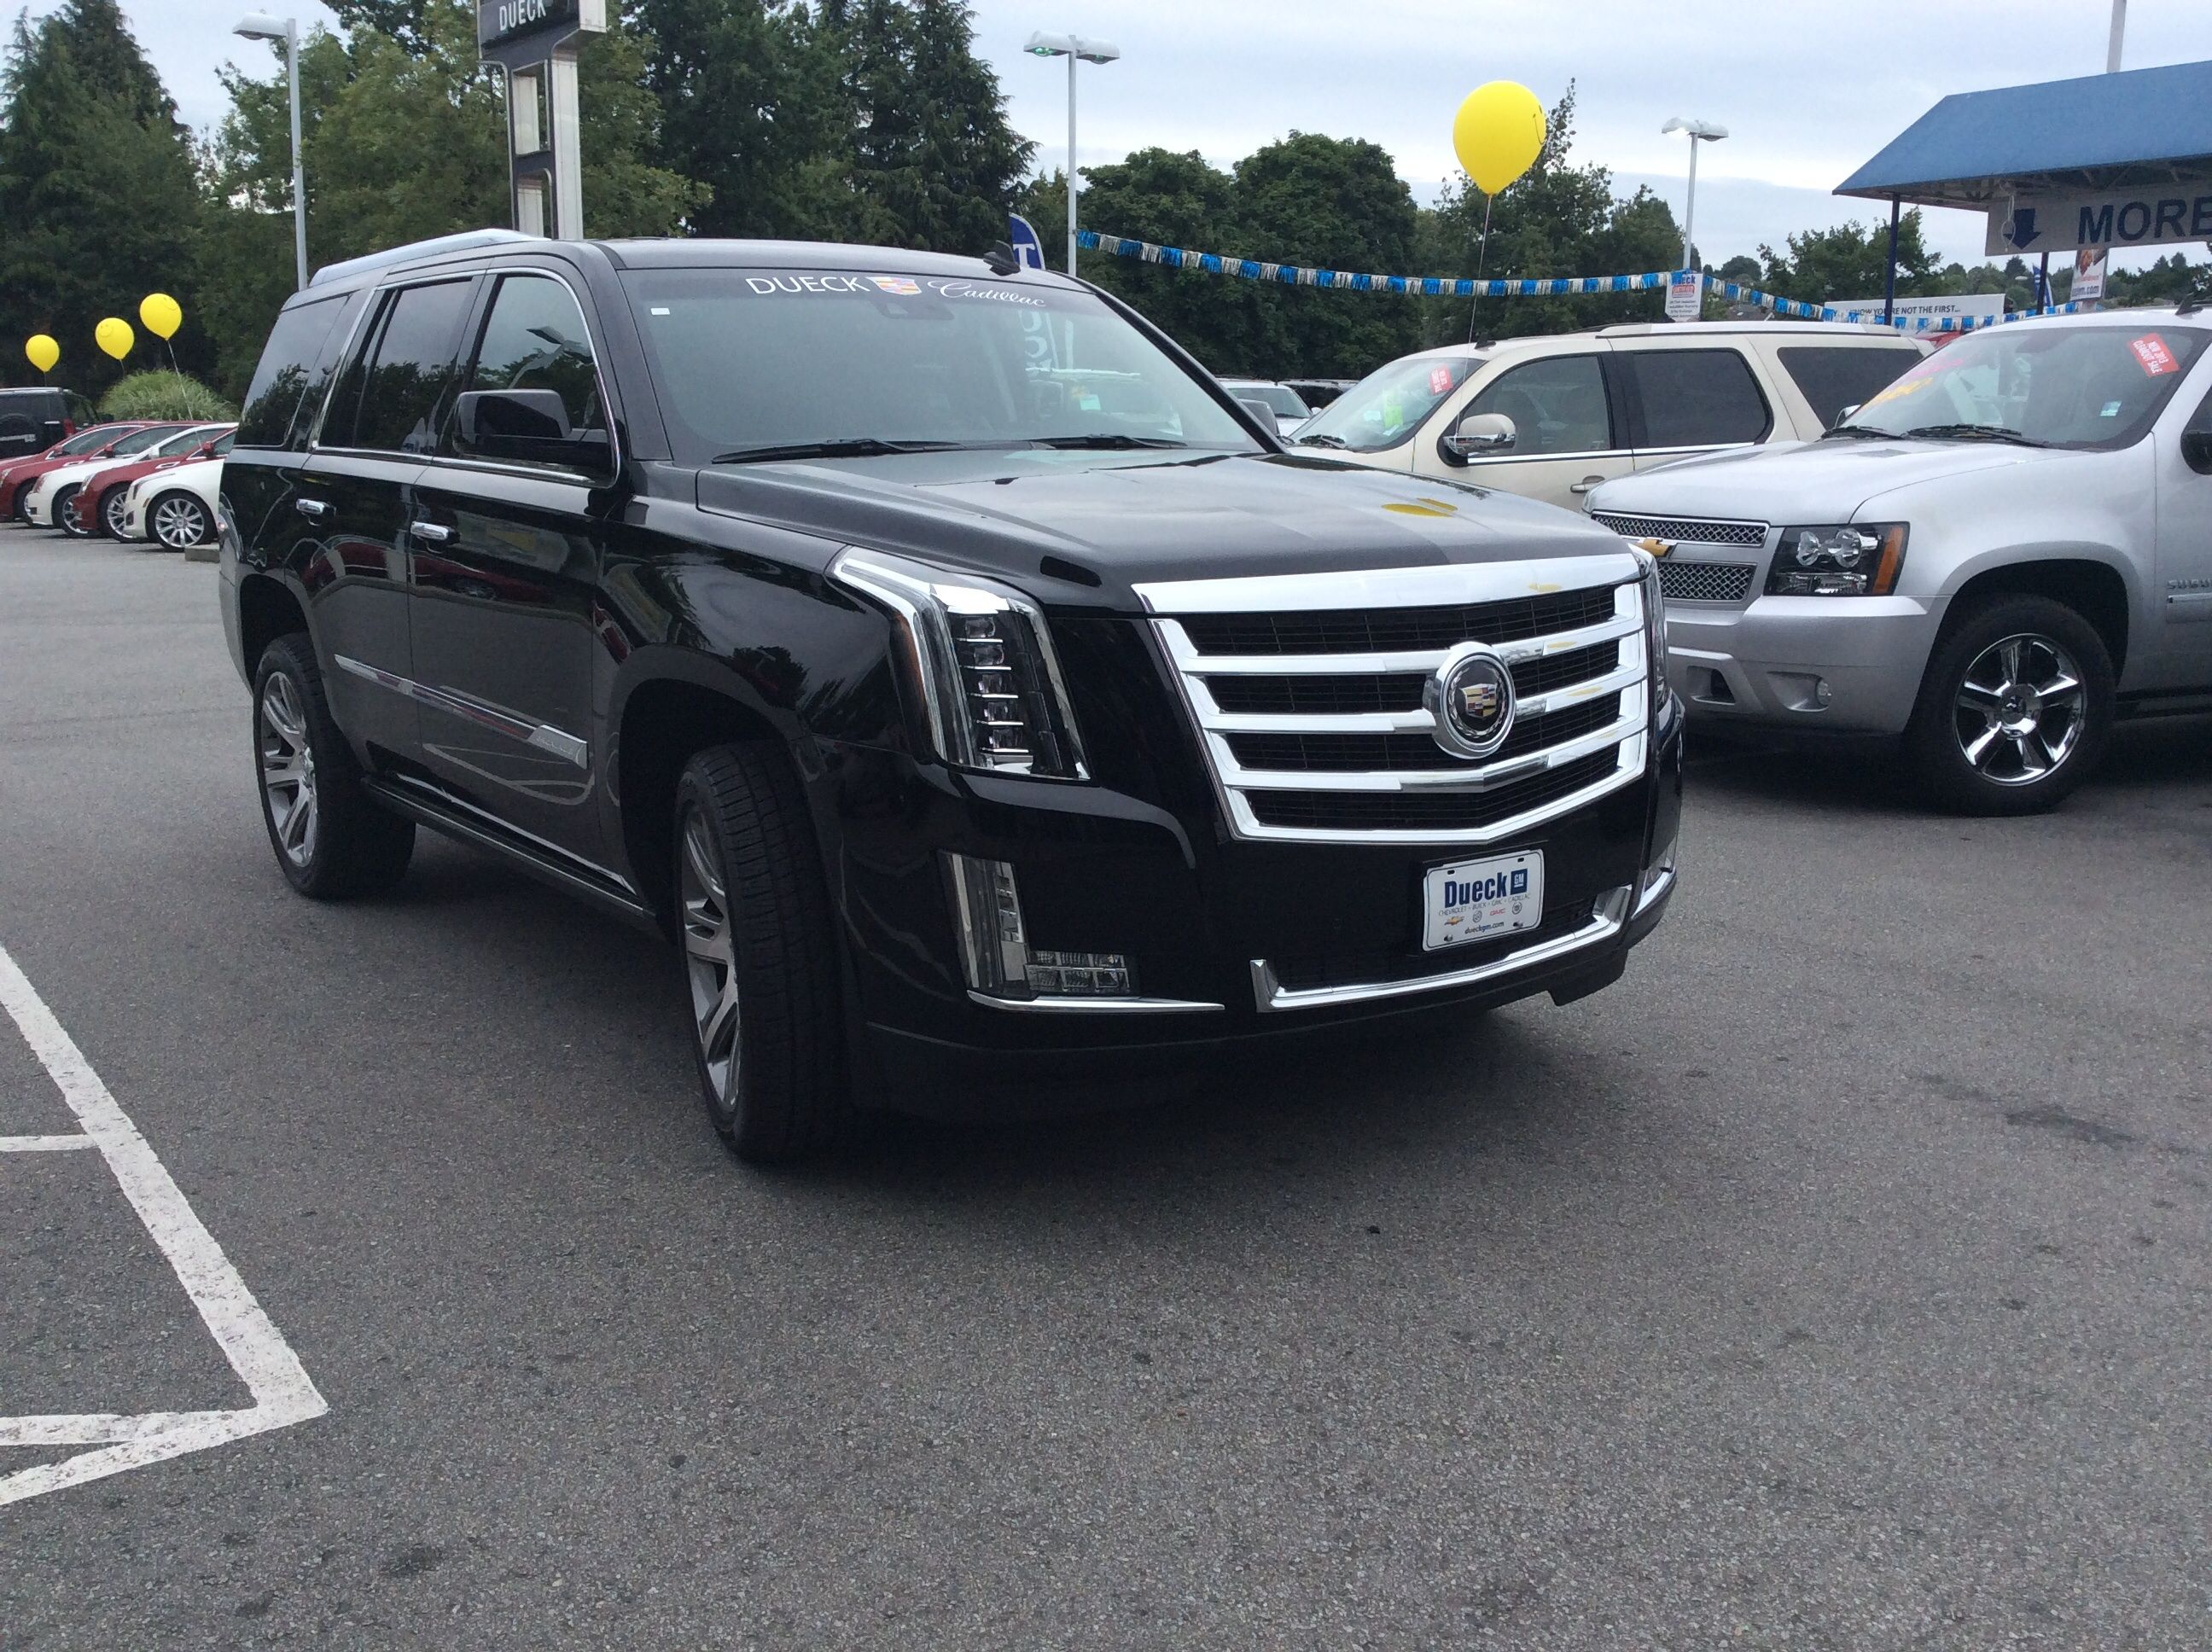 2015 cadillac escalade esv head up display gmc cadillac chevy pinterest escalade esv cadillac escalade and cadillac